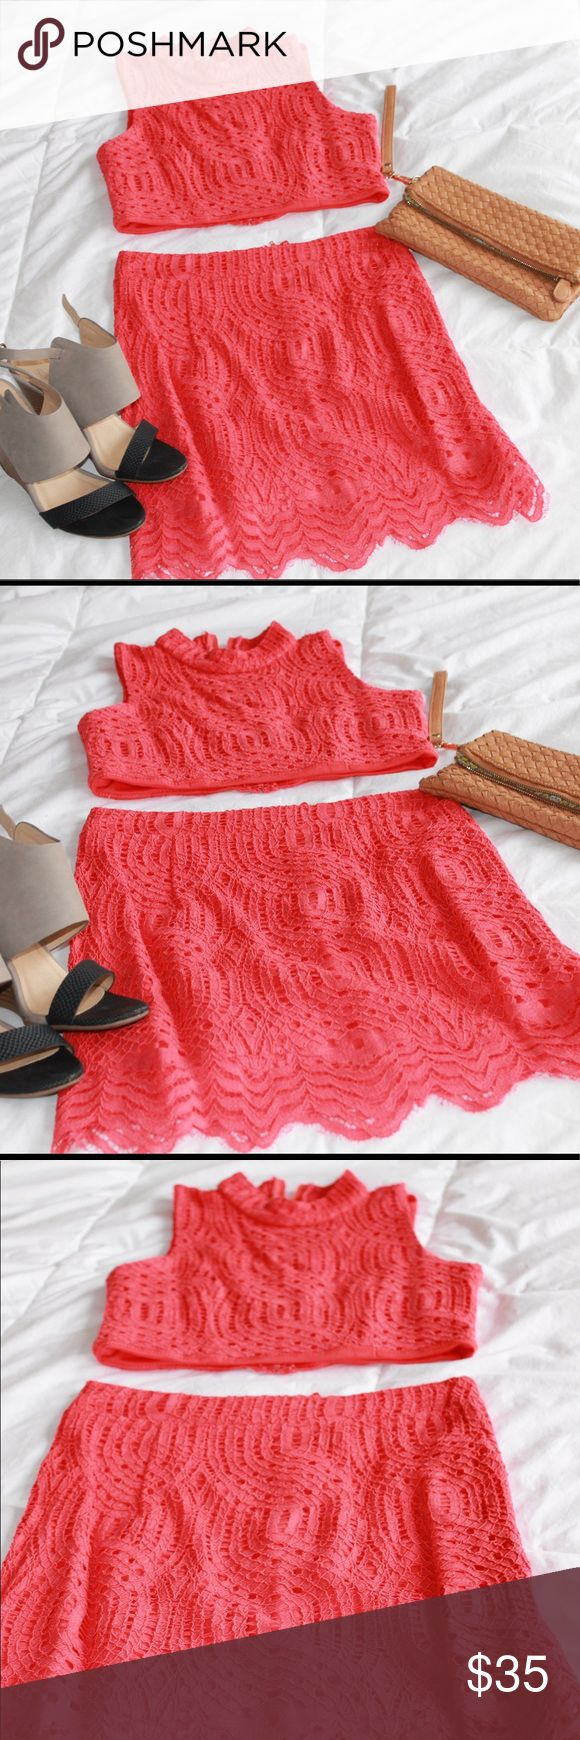 Fun and Bright Crochet Crop Top and Skirt Combo This cute crochet crop top and skirt combo in bright coral can make a night out a little more fun. Crystal Doll Dresses Mini